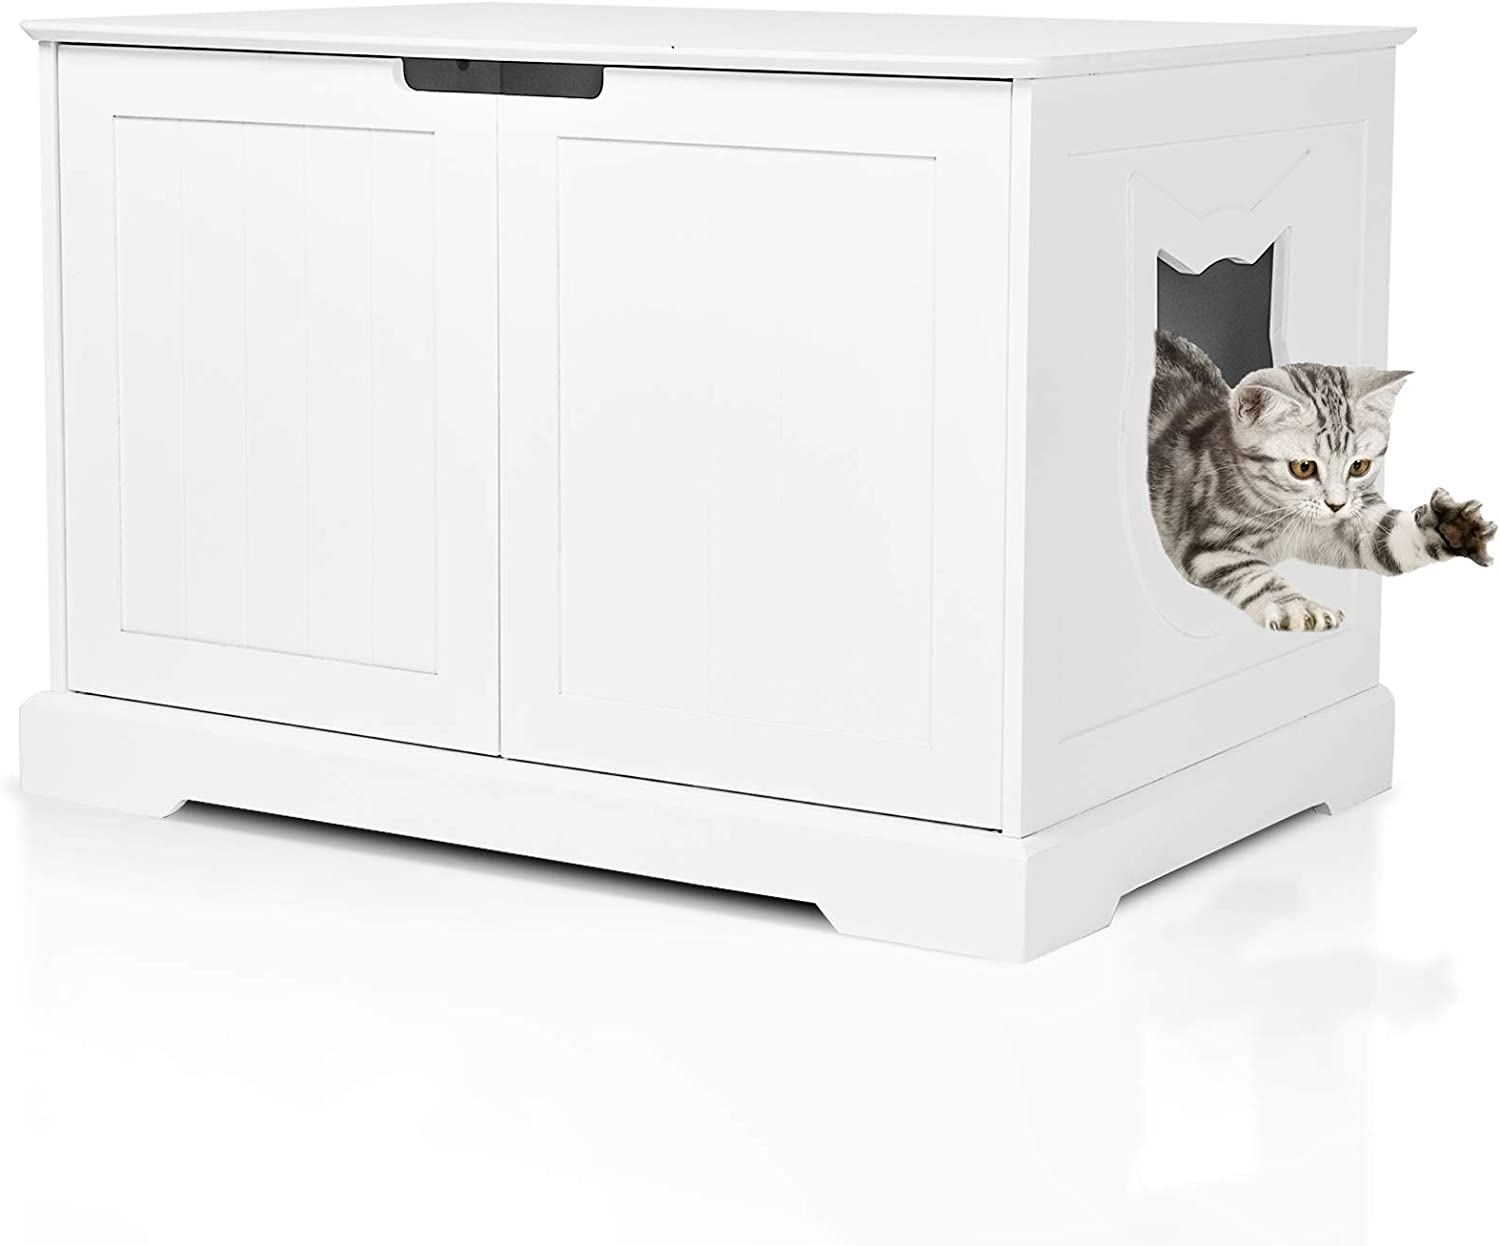 BANIROMAY Large Cat Washroom Storage Bench, Cats Litter Box Enclosure Furniture House and Nightstand Side Table, Spacious Cat Storage Cabinet for Living Room, Bedroom, Bathroom…